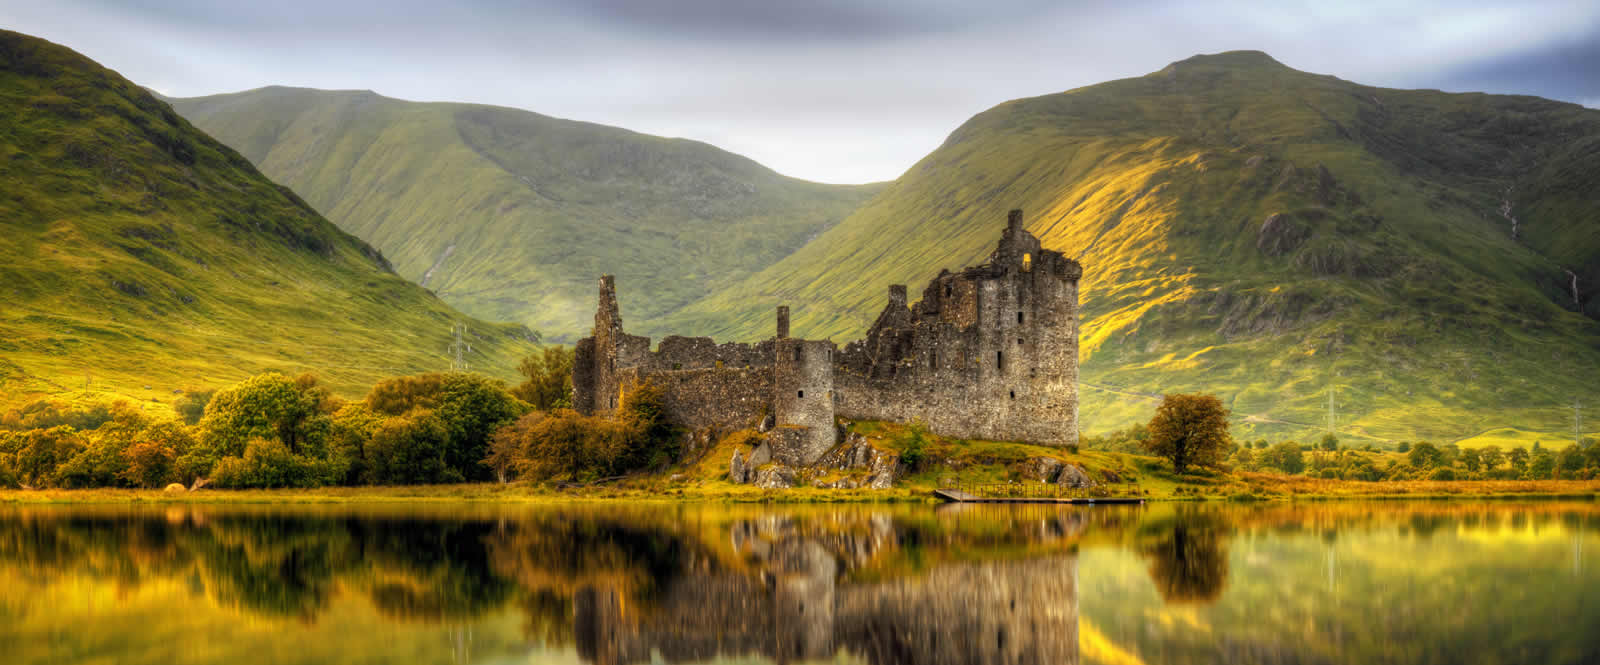 Loch Awe And Loch Etive Visitor Guide Hotels Cottages